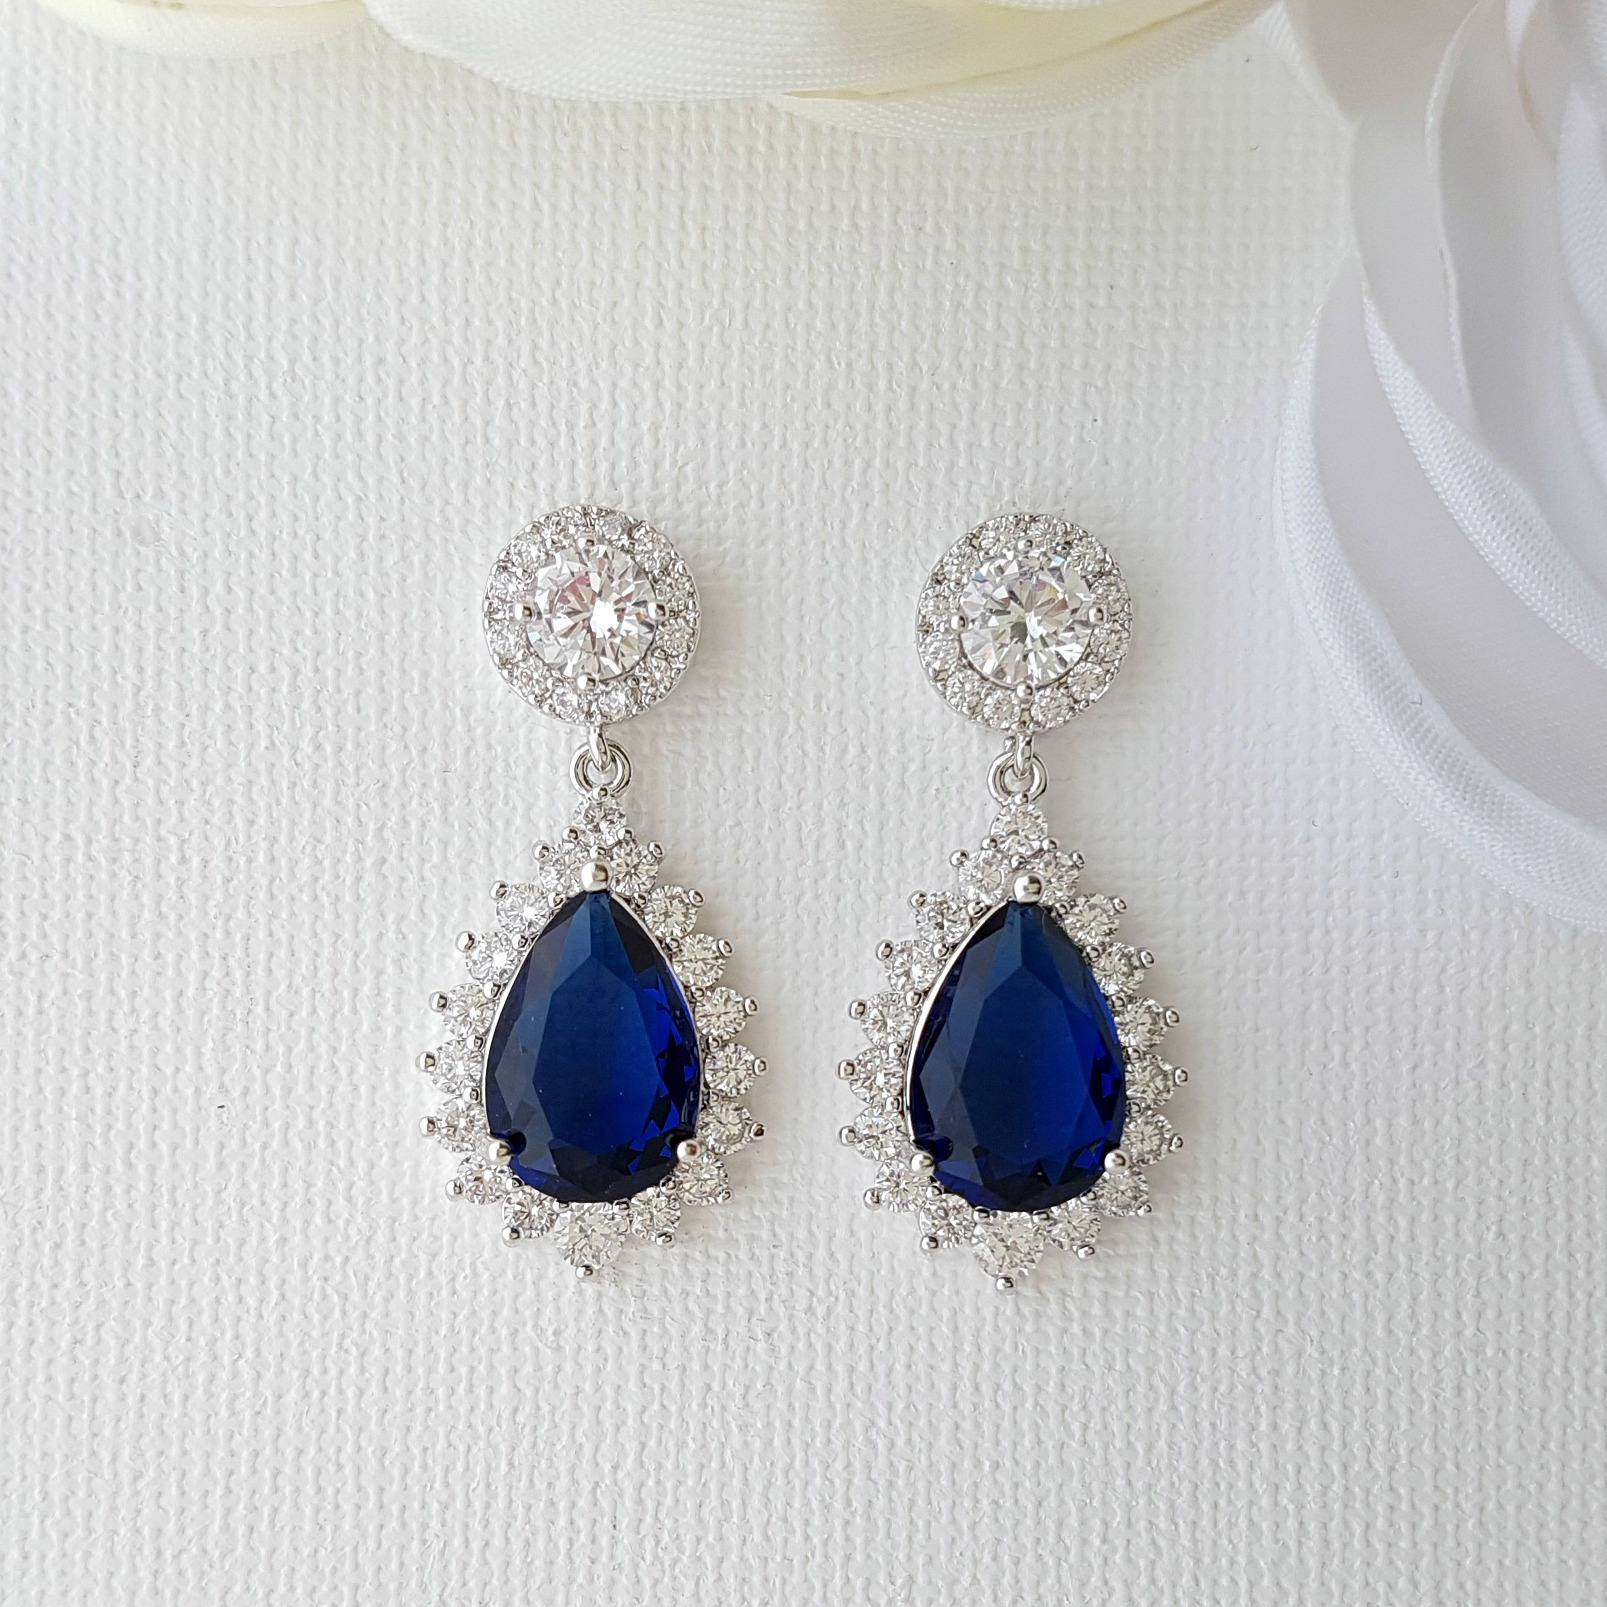 Blue Stone Earrings in Cubic Zirconia Earrings